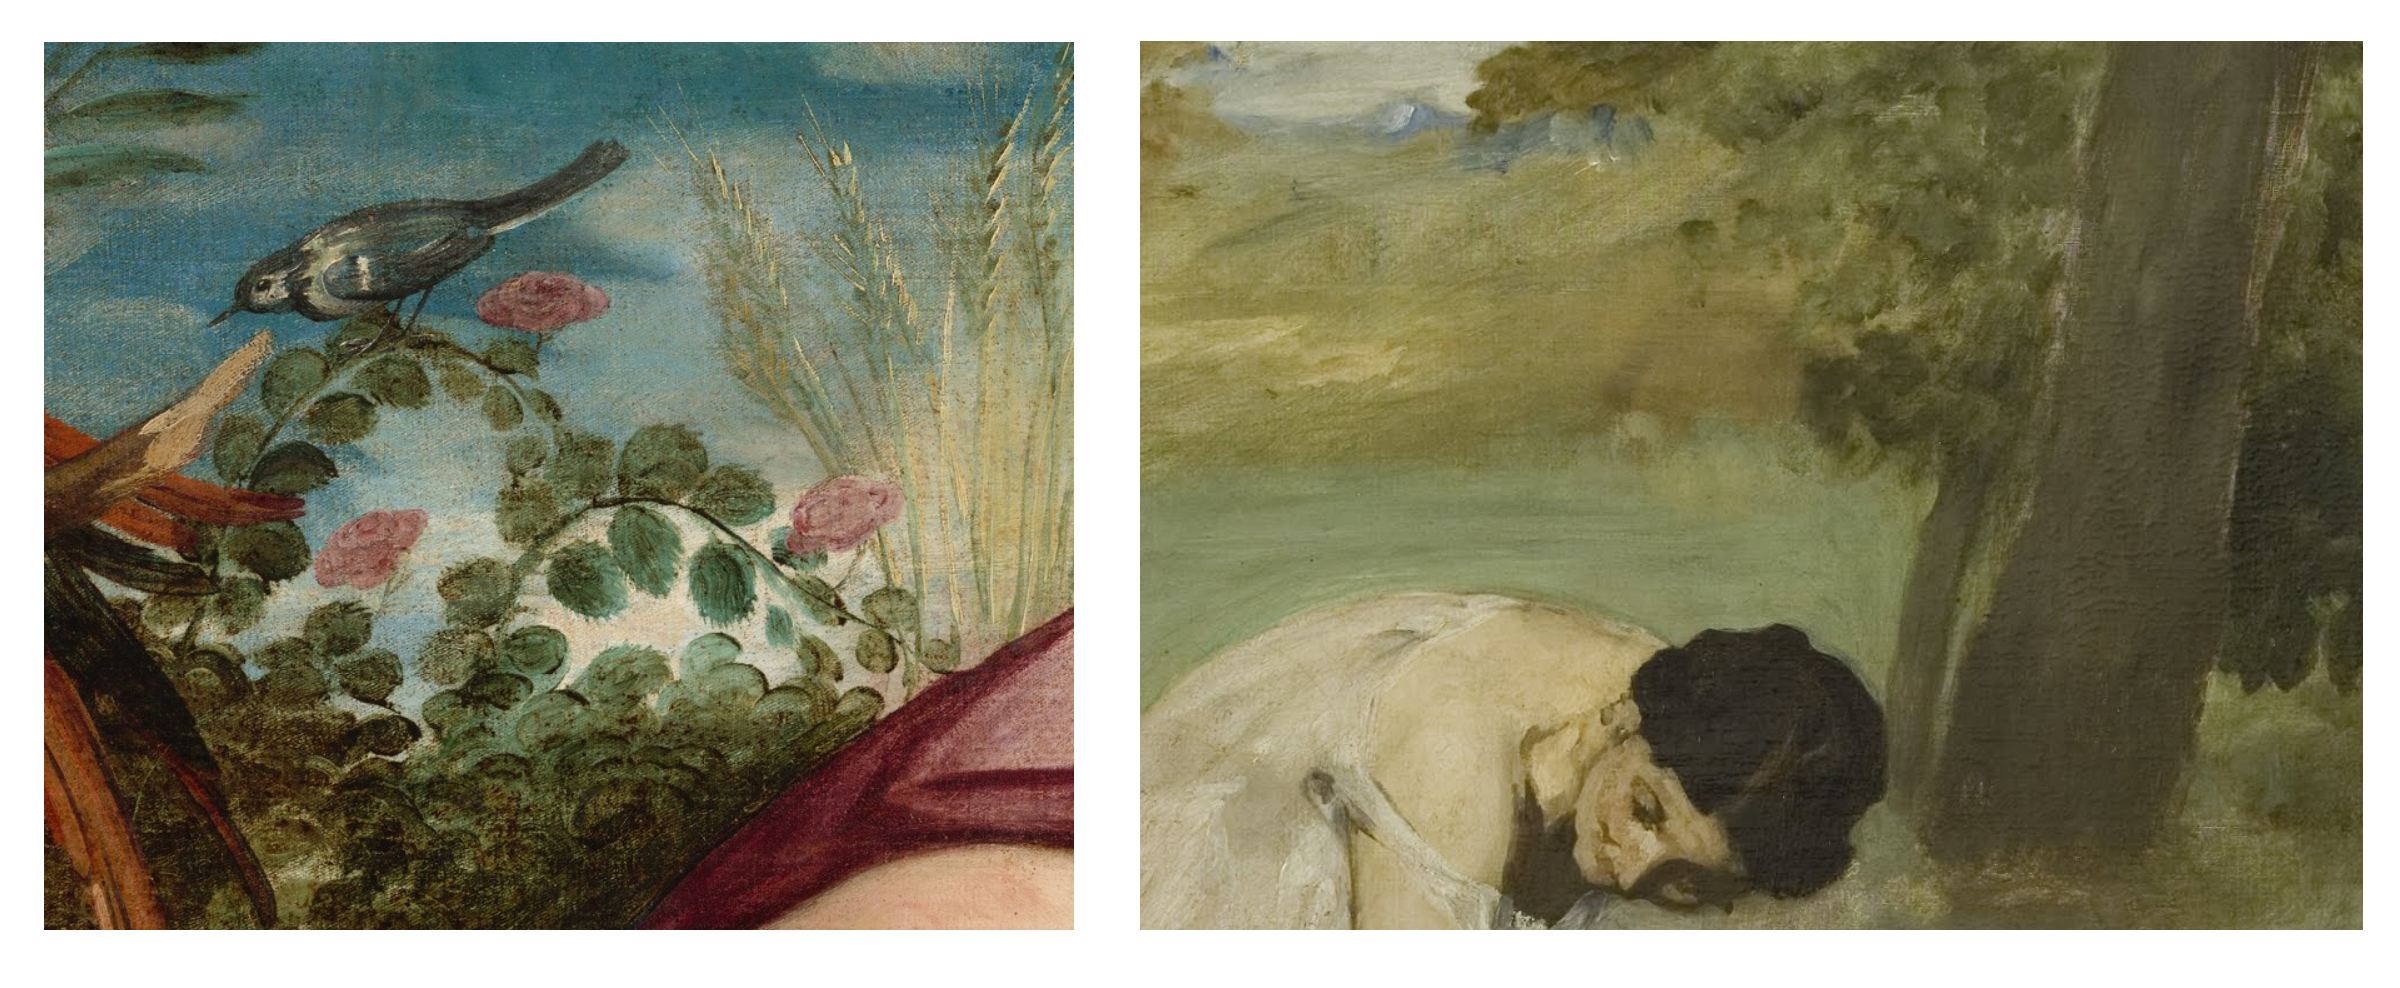 Left: Summer, Tintoretto, National Gallery of Art  Right: Le Dejeuner Sur L'Herbe, Manet, Muse D'Orsay, Paris